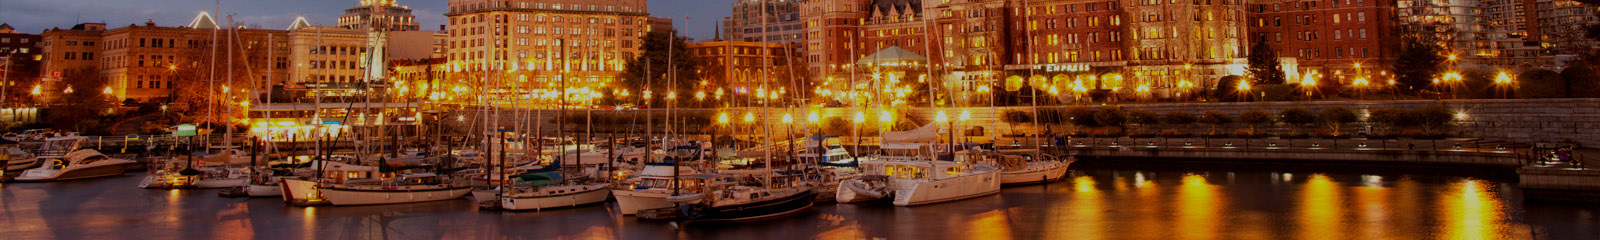 A complete city guide to Victoria, British Columbia. Learn all you need to know, from Victoria's education system, living costs, top reasons to visit, and more.